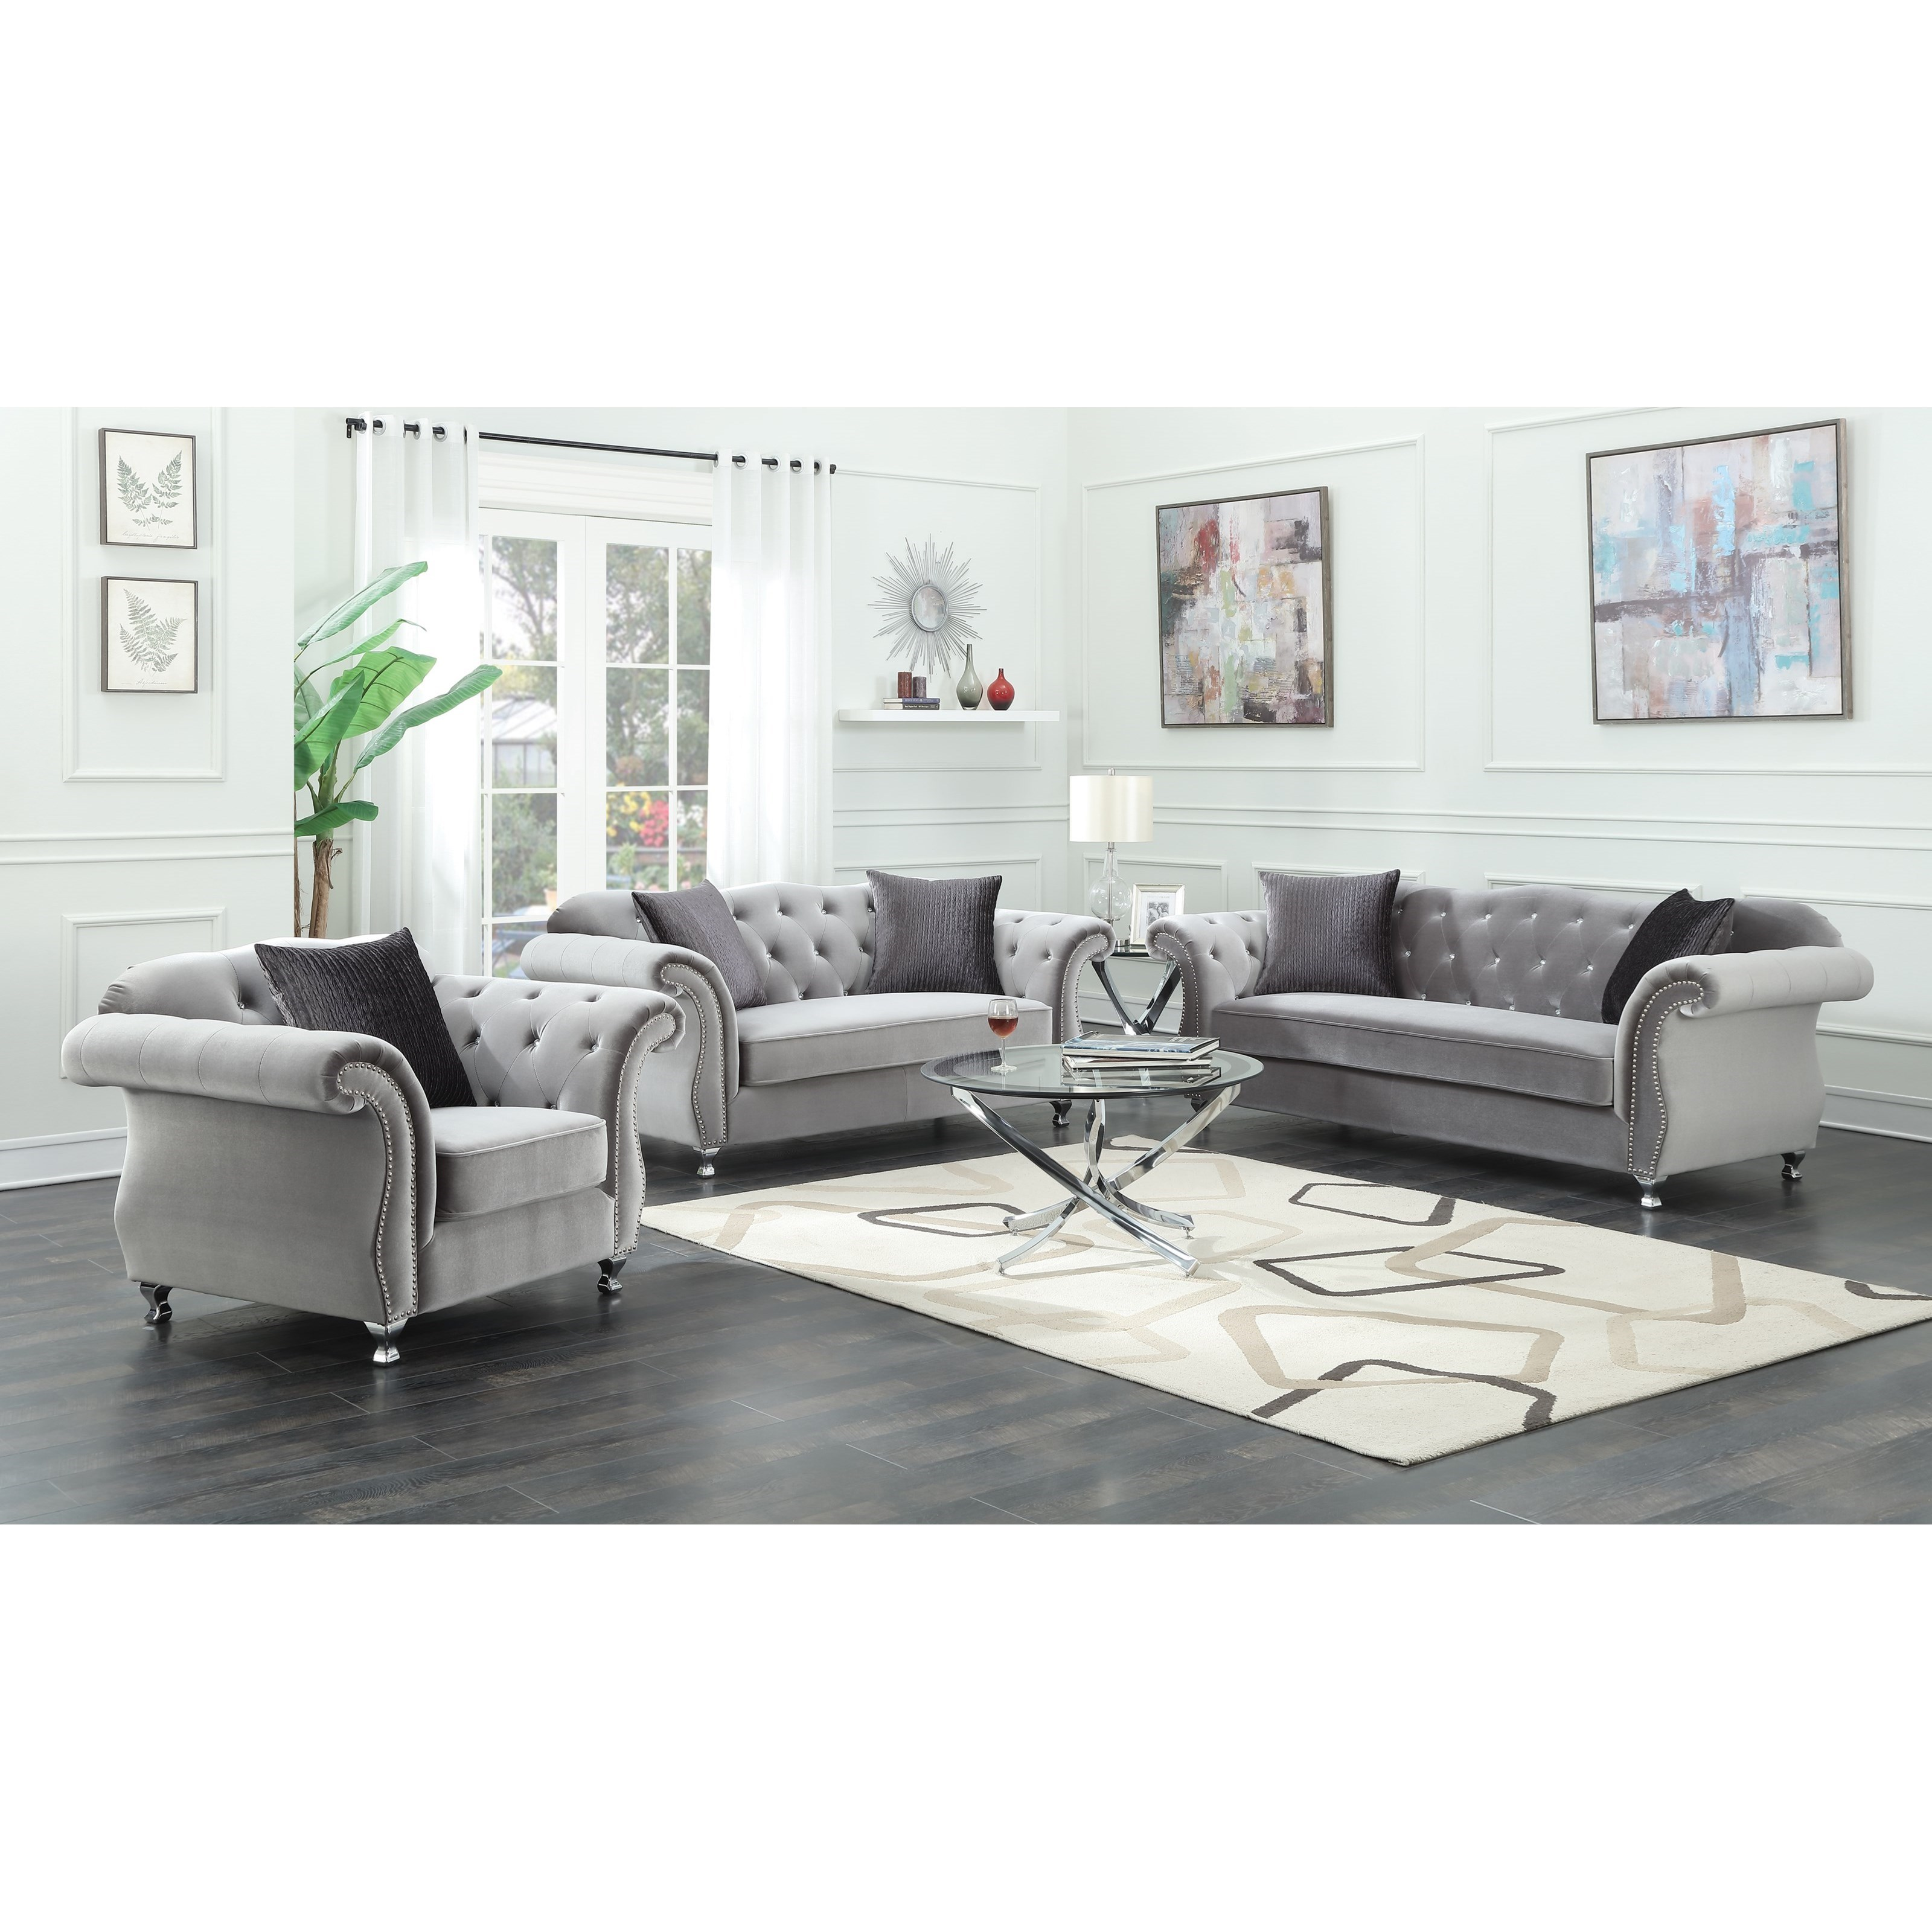 Frostine Stationary Living Room Group by Coaster at Beds N Stuff